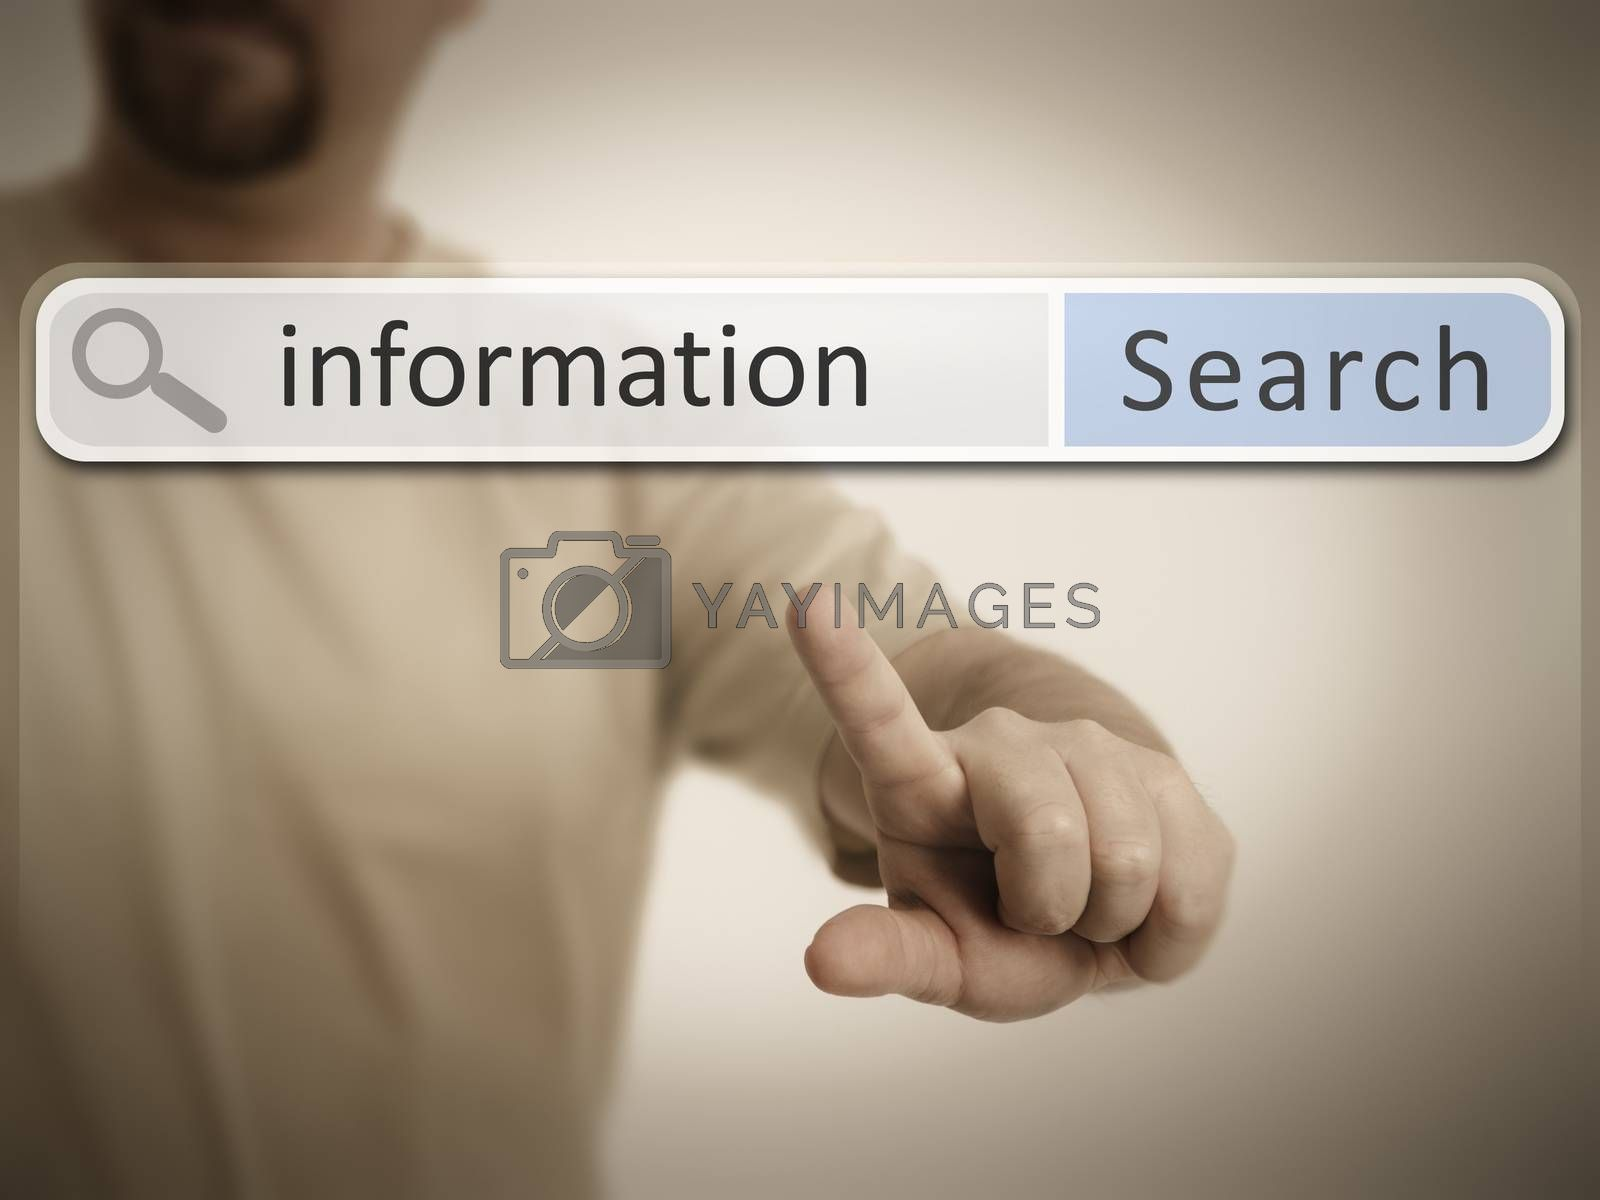 An image of a man who is searching the web after information